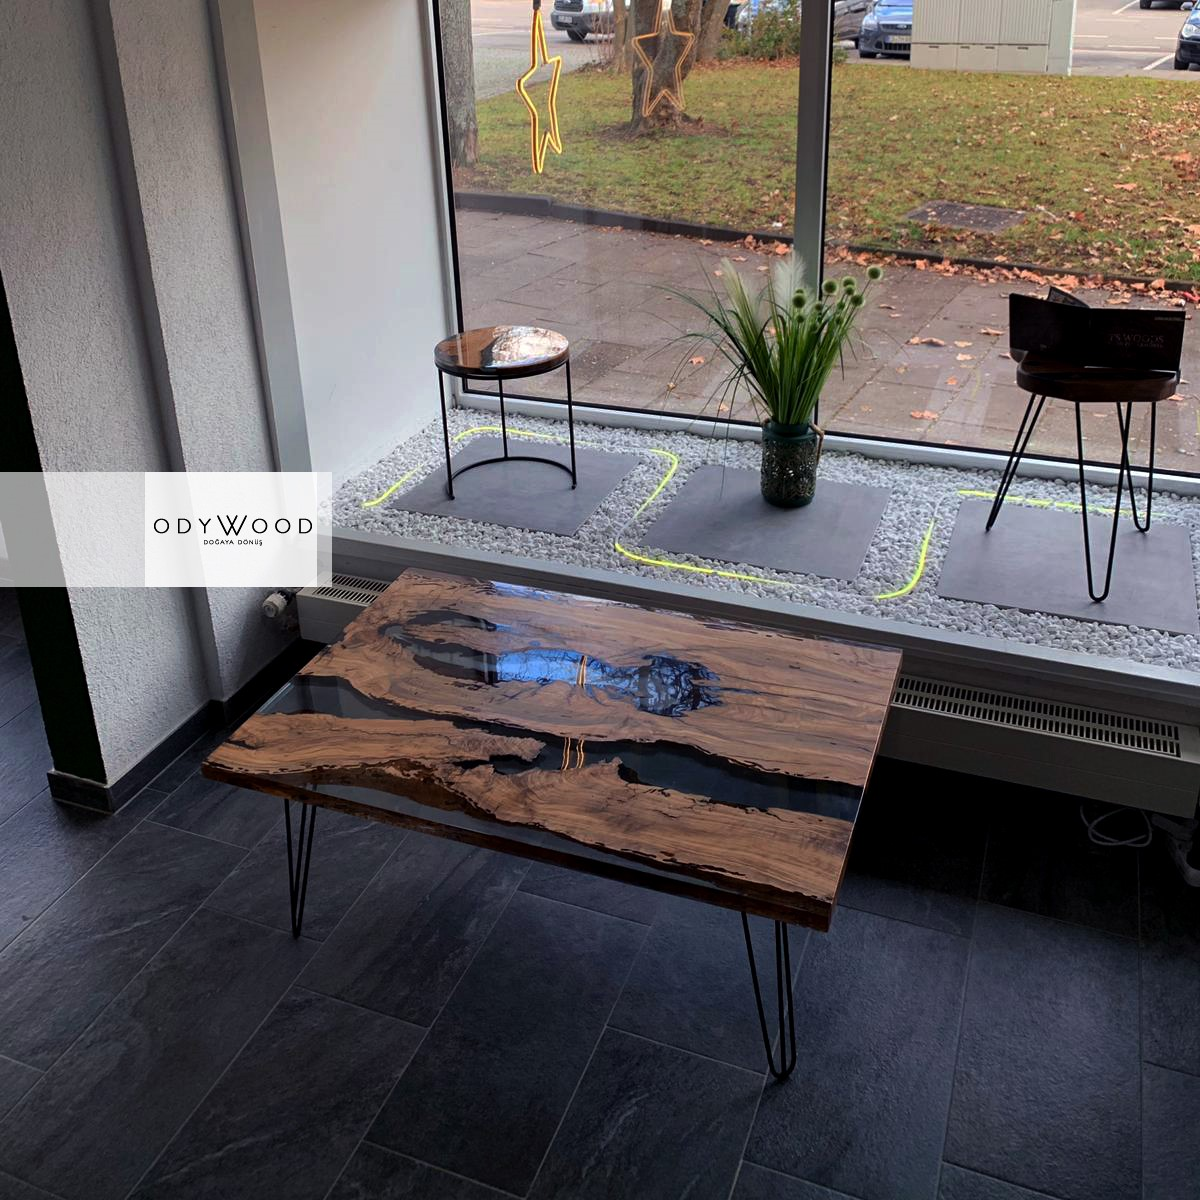 Transparent Resin Coffee Table - Olive Wood Slabs'in resmi